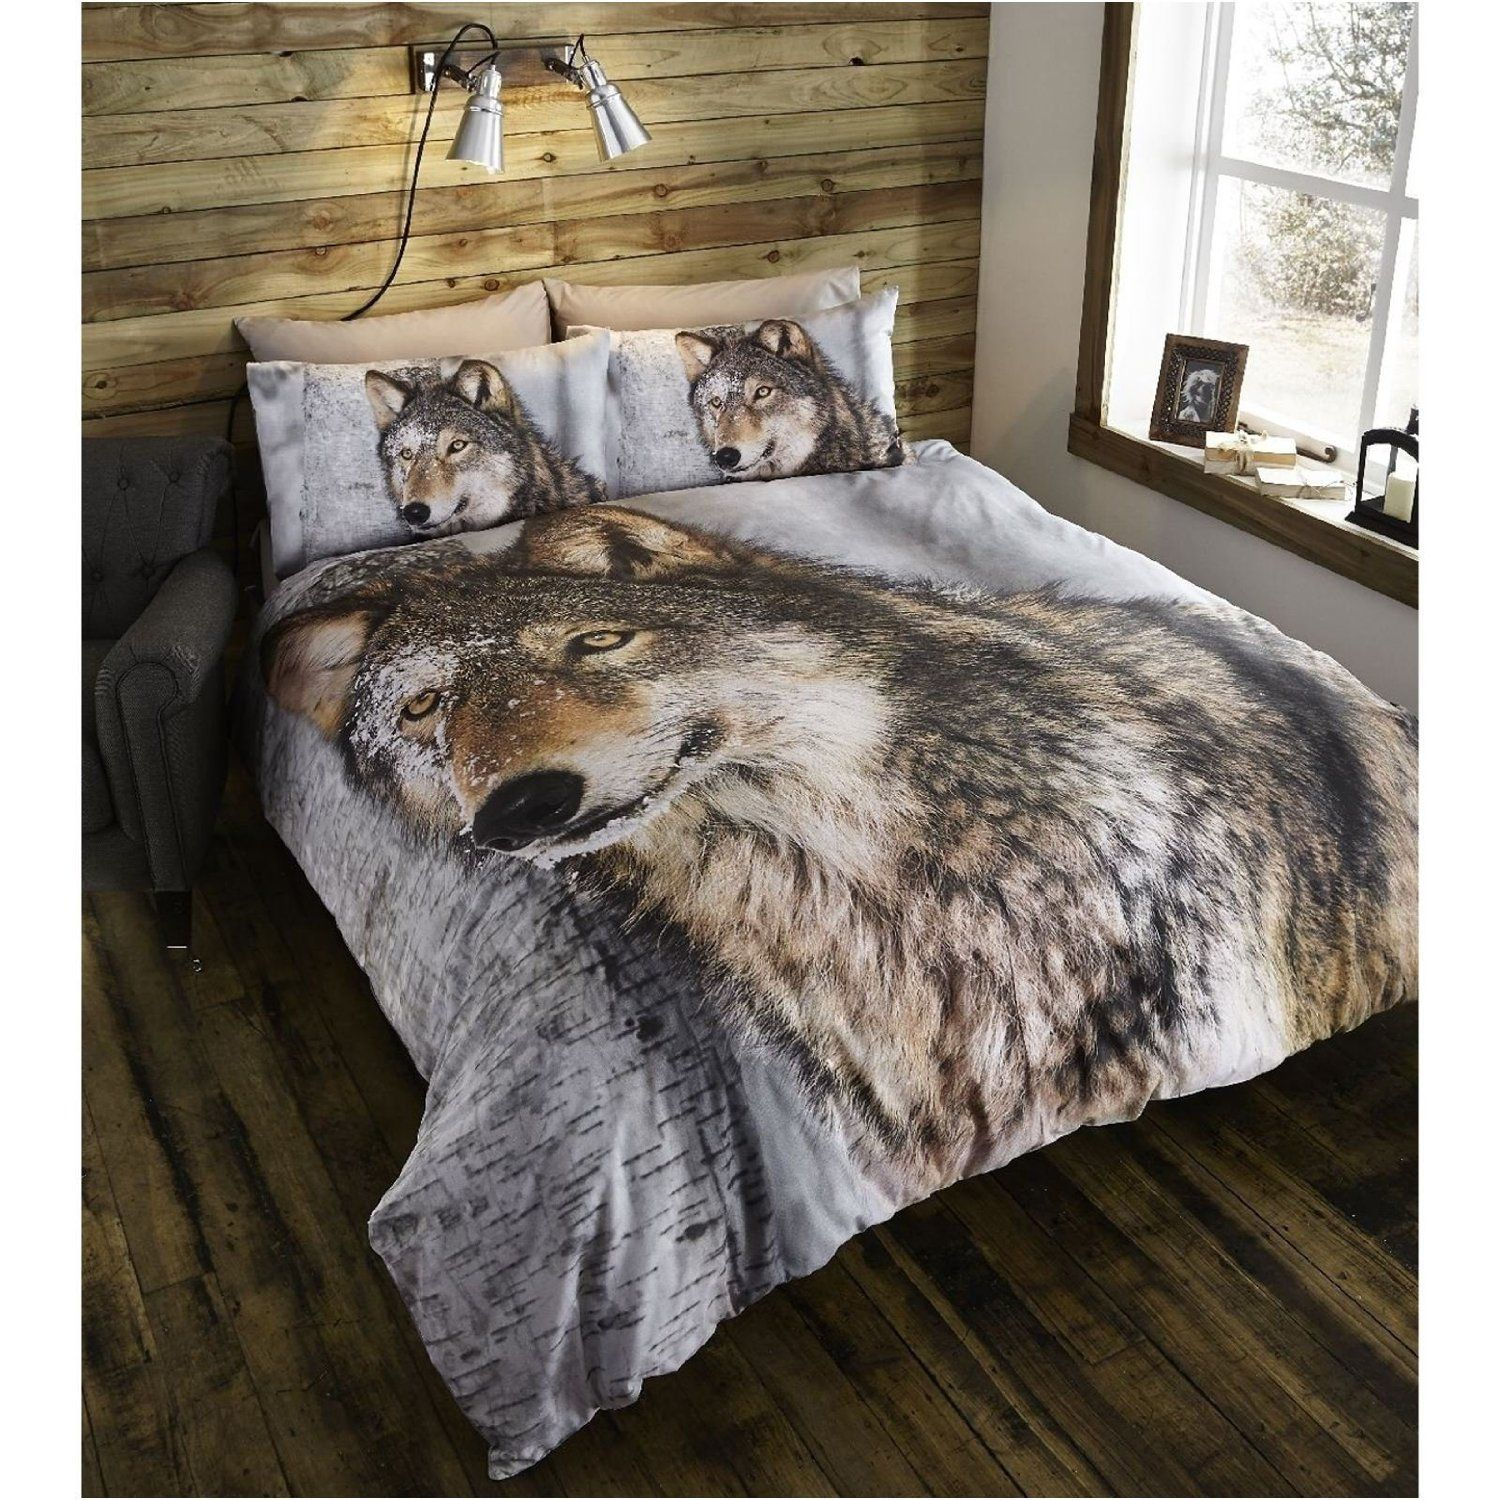 Double Duvet Cover U0026 Pillowcases Bedding Bed Set Brown Wolf Animal: Amazon .co.